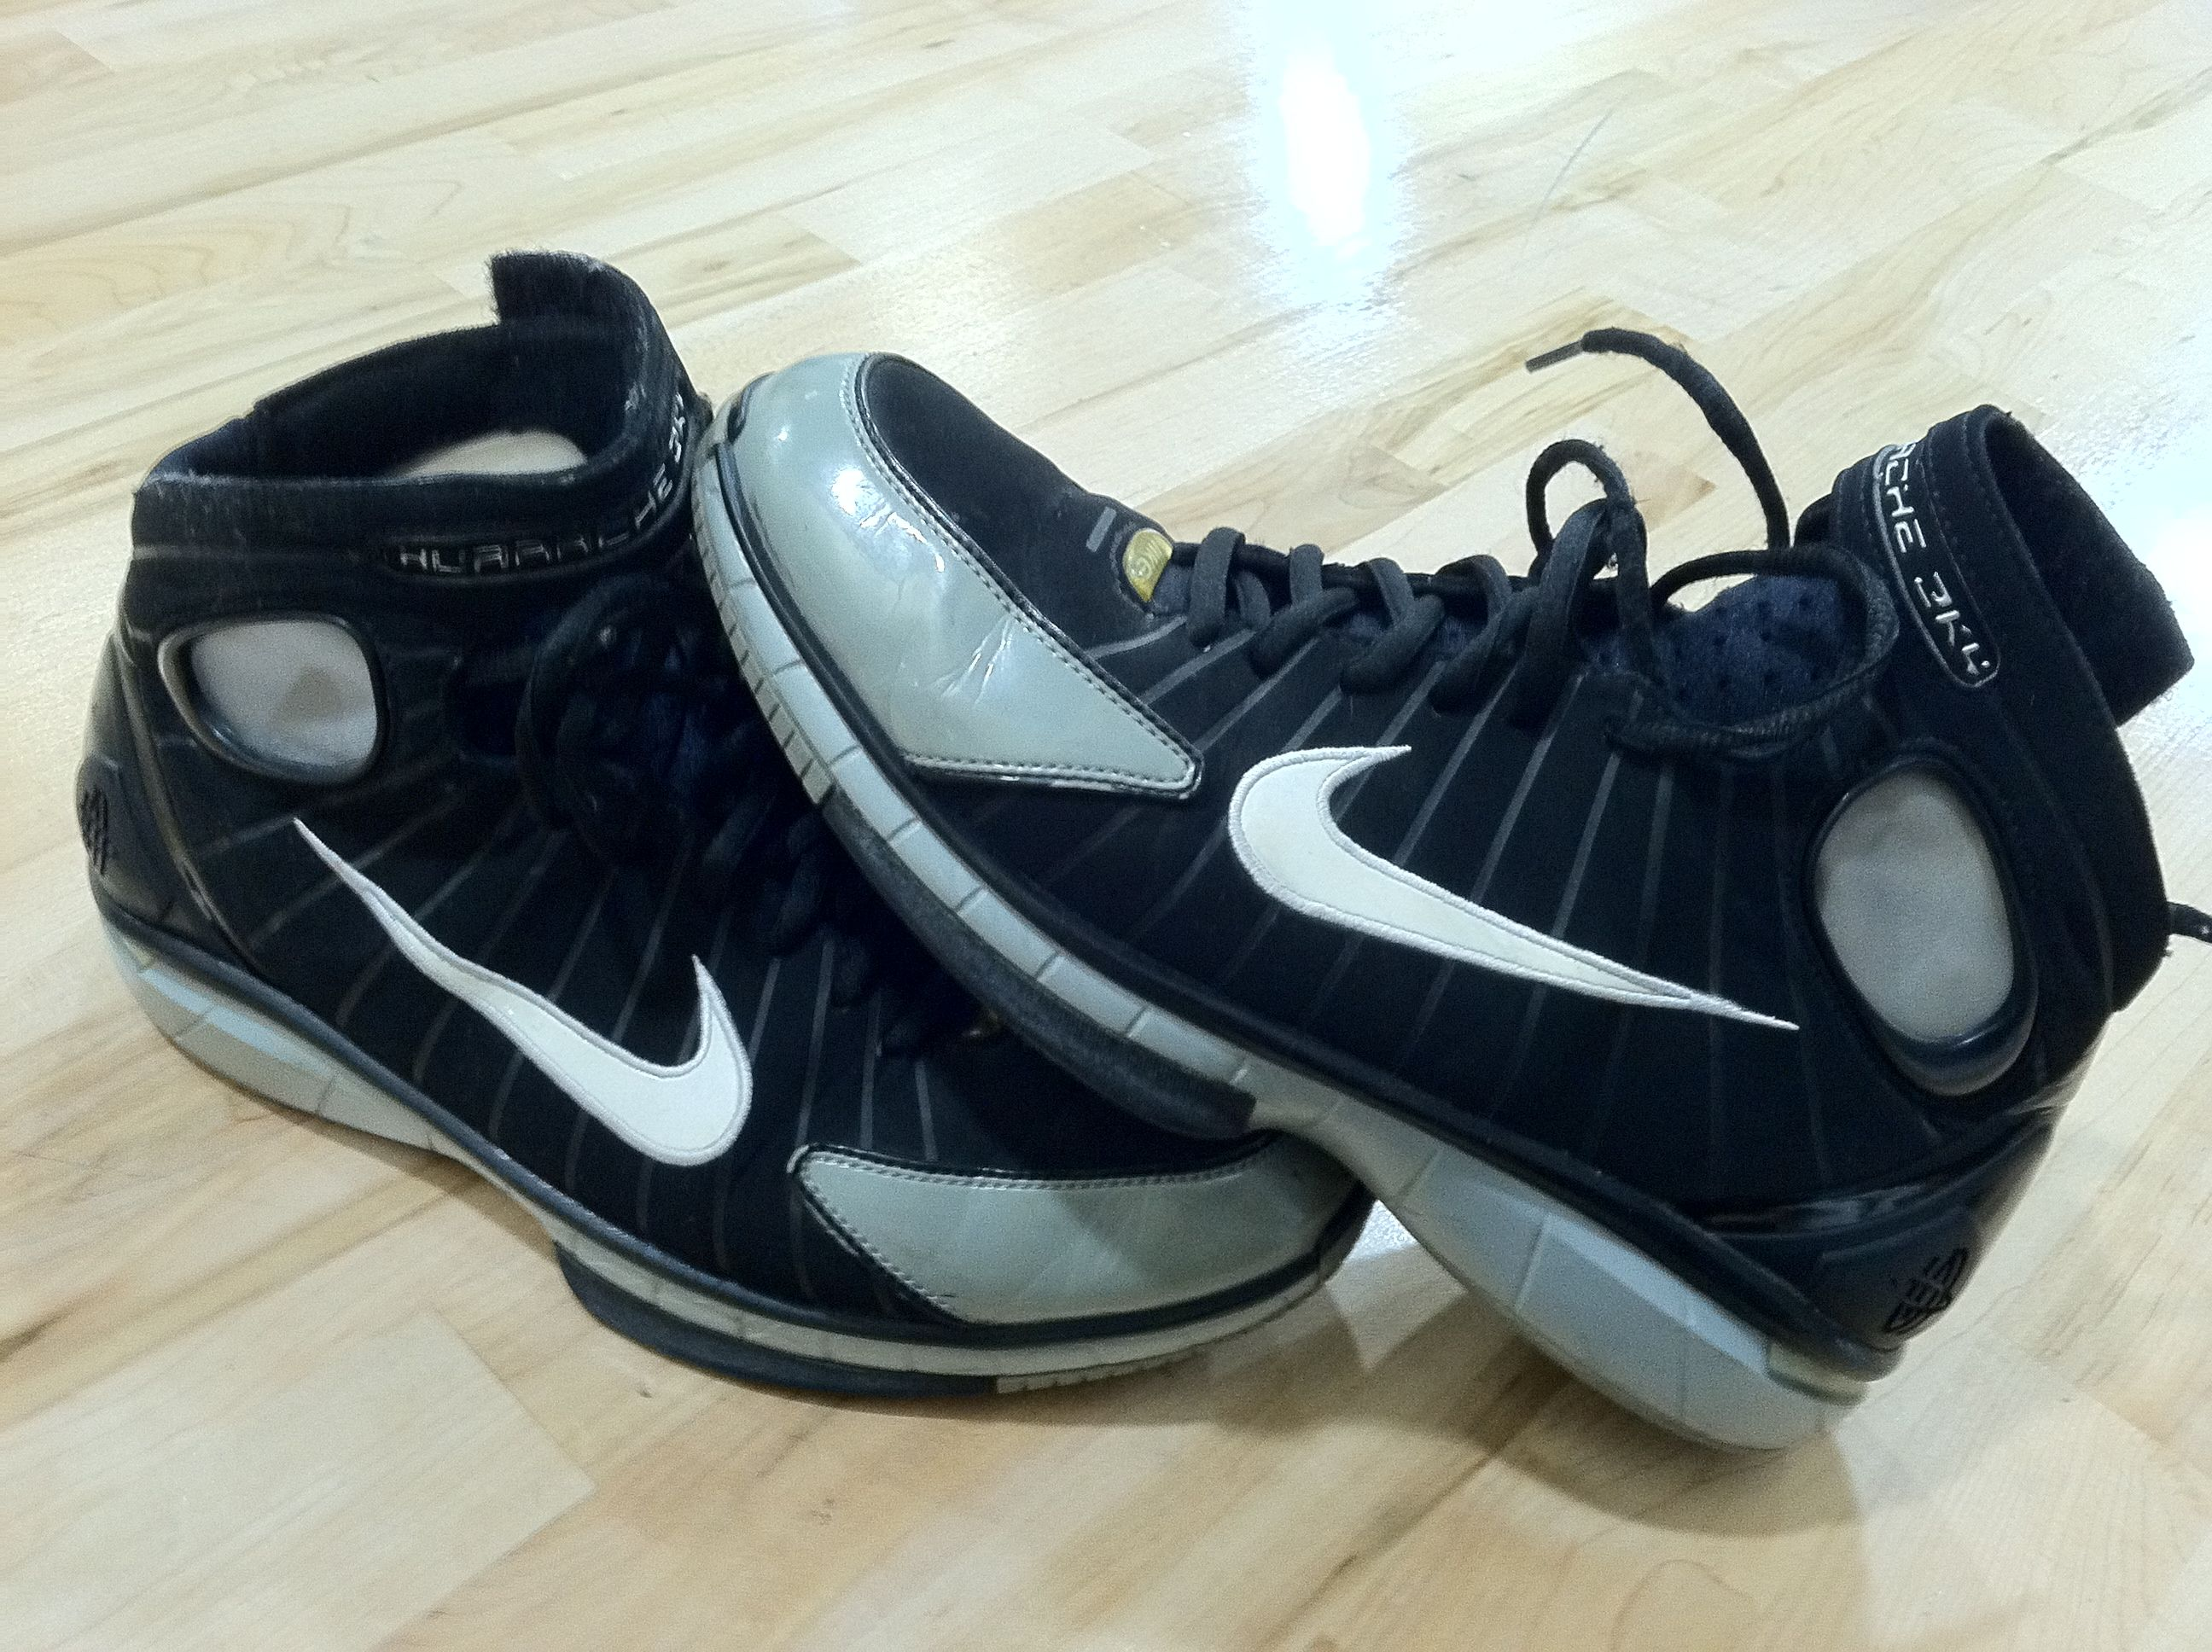 Nike Air Huarache 2K4 2004-2012...Thanks for keeping my ankles and